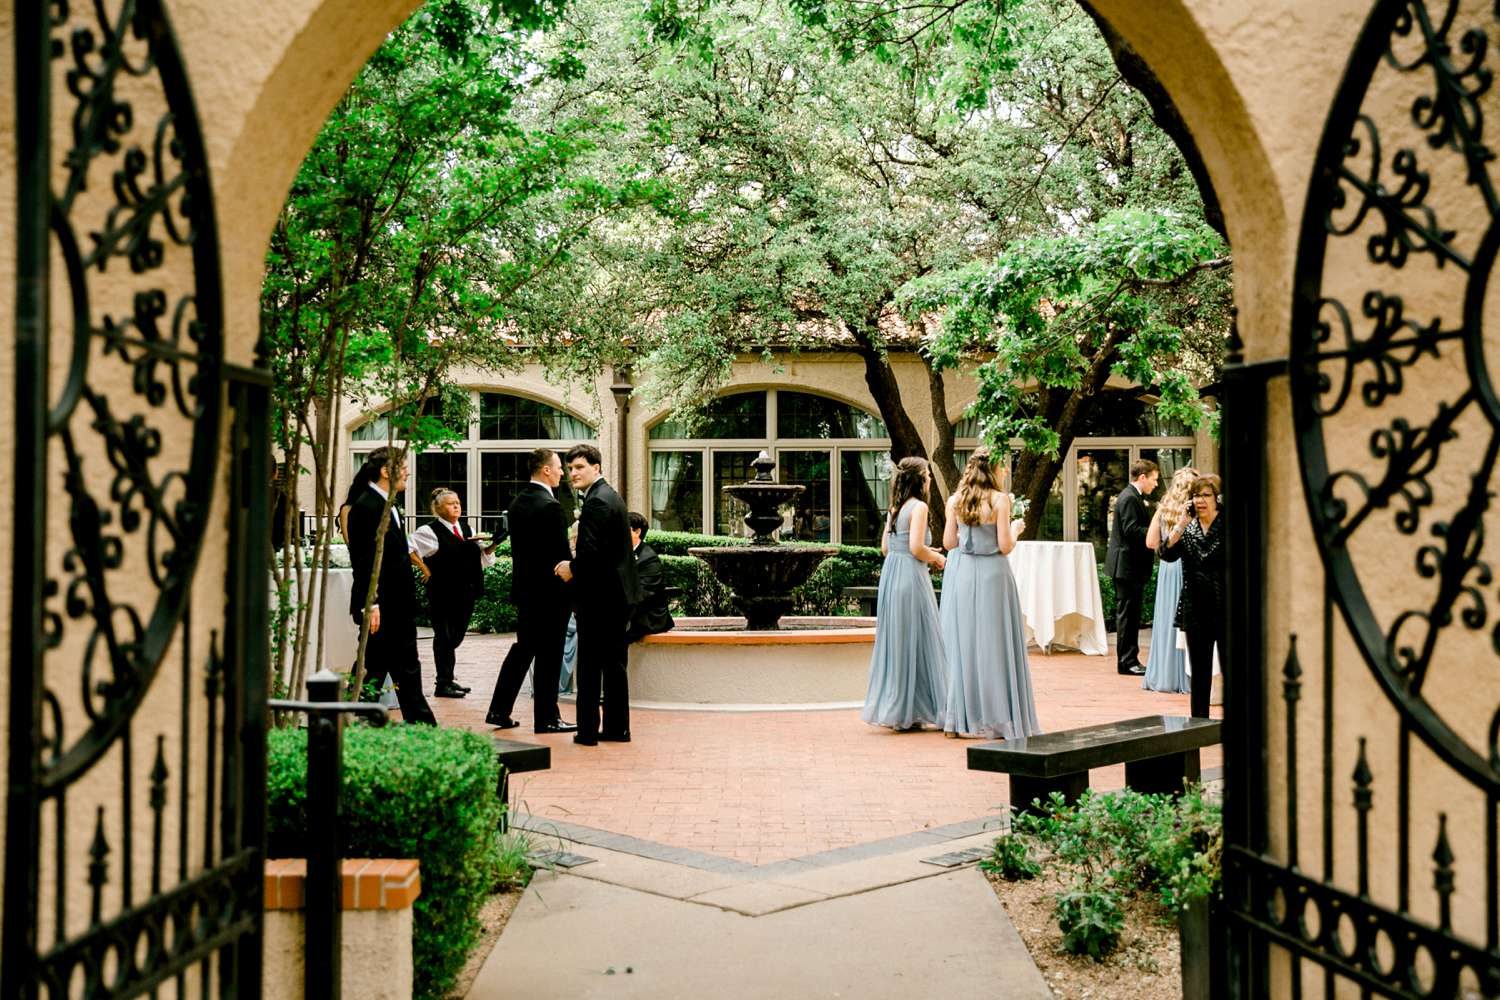 HANNAH+CRAIG+CHILDS+TEXAS+TECH+WEDDING+ALLEEJ+LUBBOCK+PHOTOGRAPHER_0115.jpg